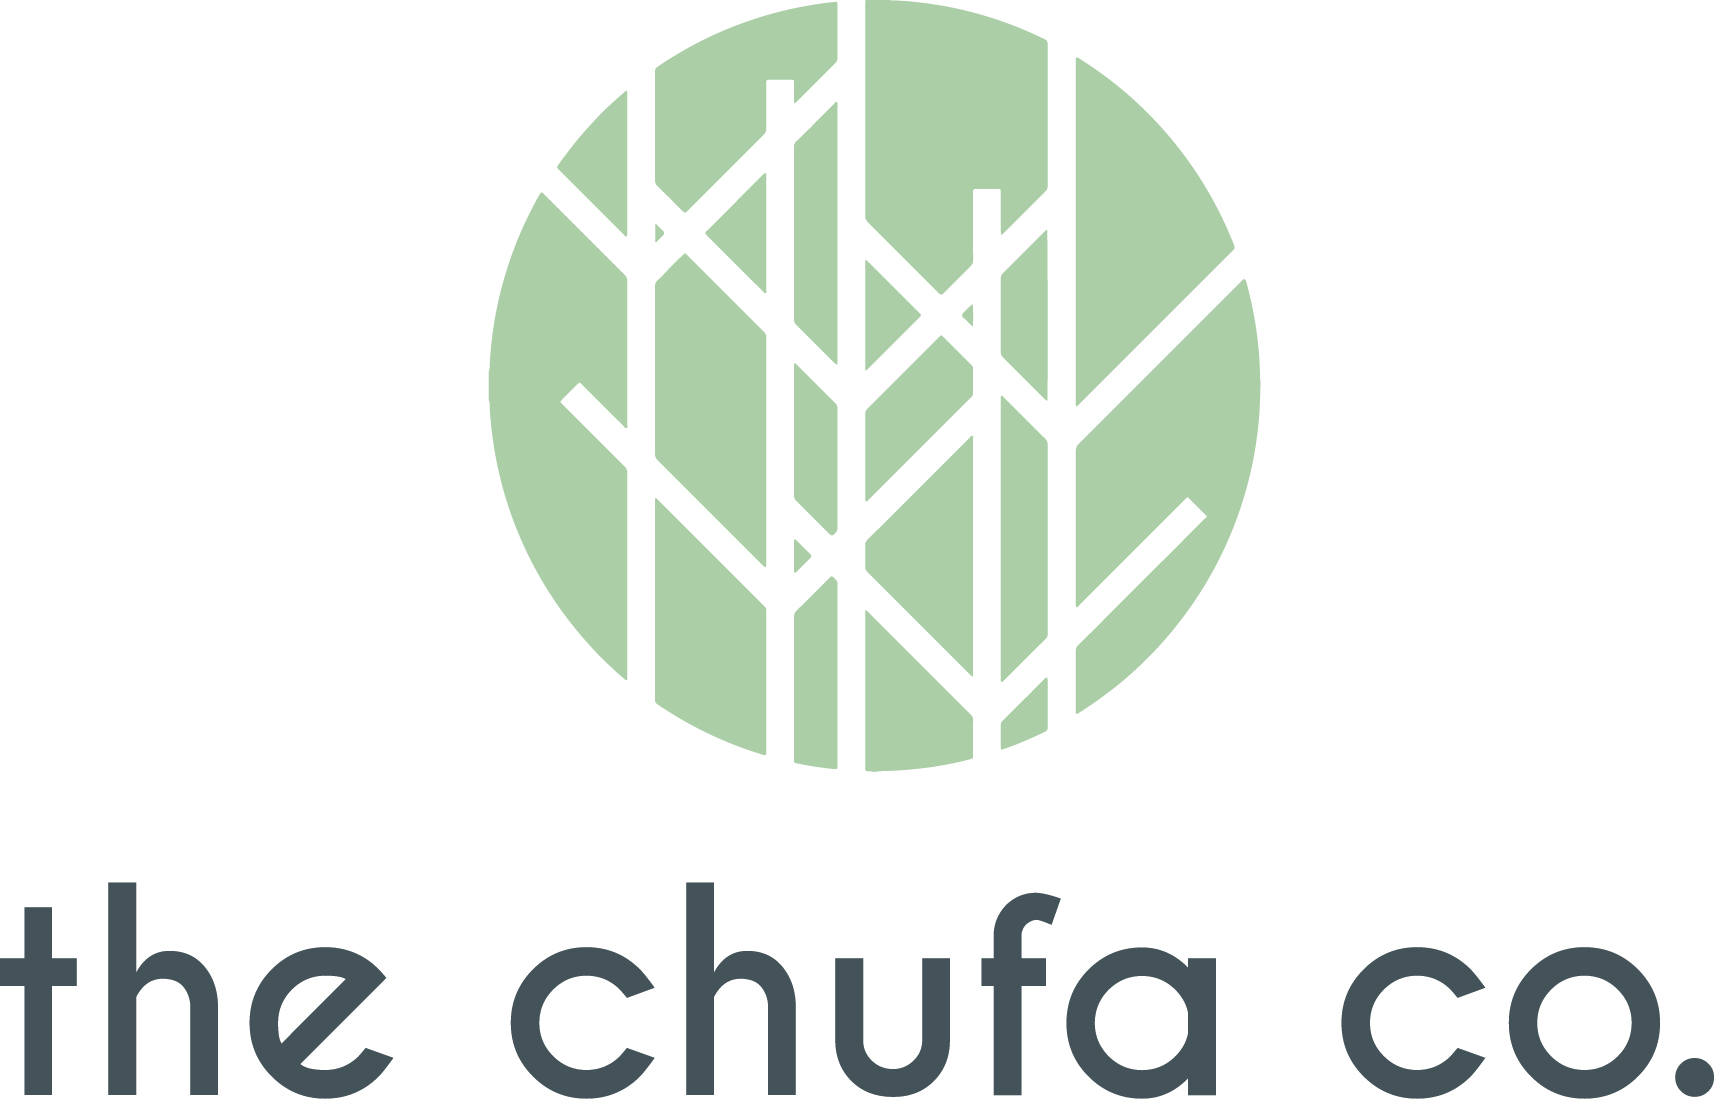 thechufaco logo